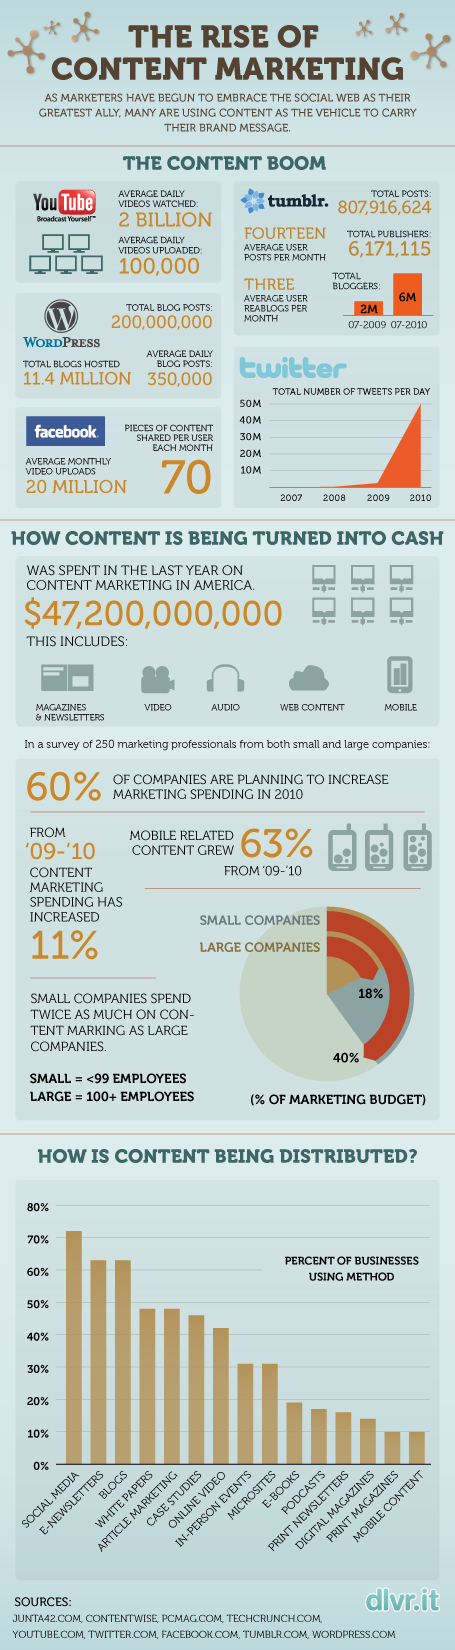 Content Marketing Infographic1.png.scaled5001 Wie Sie mit Content Marketing Ihre Marktposition und Ihr SEO verbessern